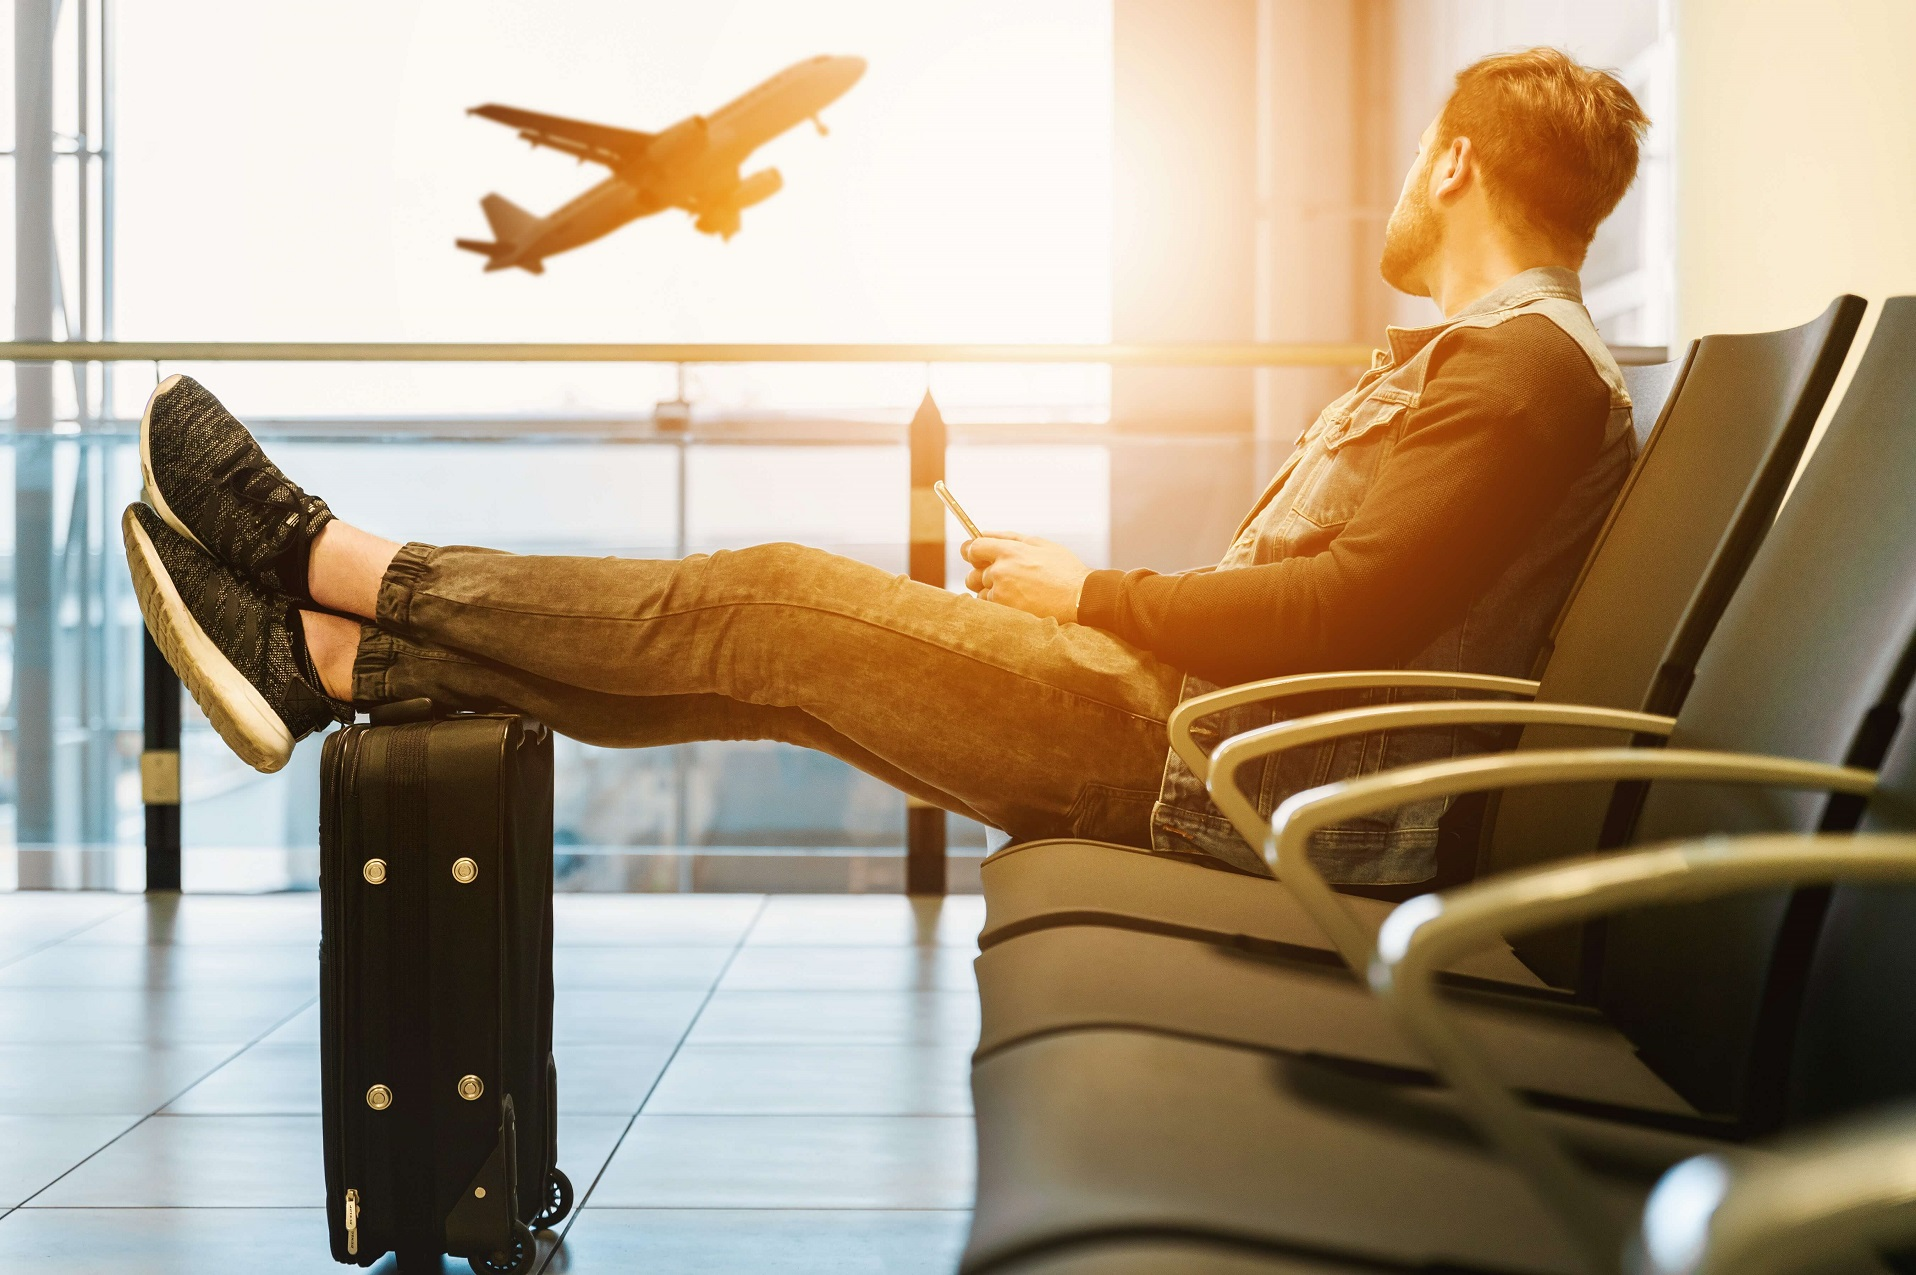 Man Sitting On Chair With Feet On Luggage